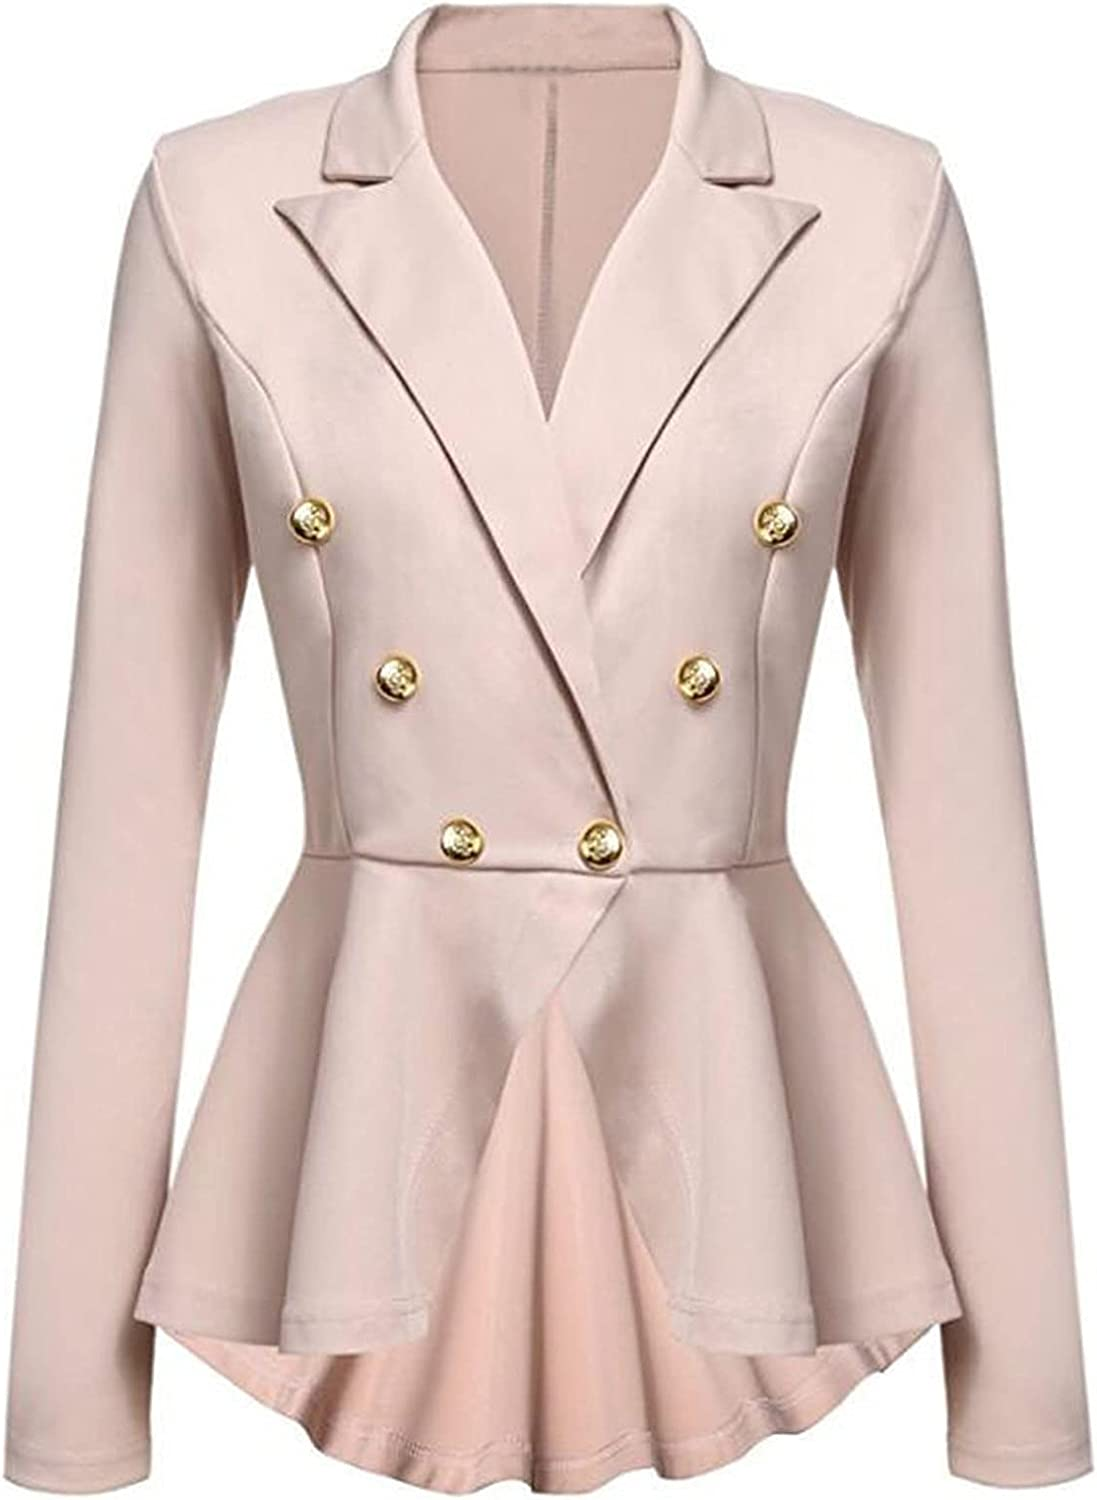 Womens Lightweight Jackets Coats Zip Up Floral Casual Jacket Long Sleeve Fall Short Jackets with Pockets